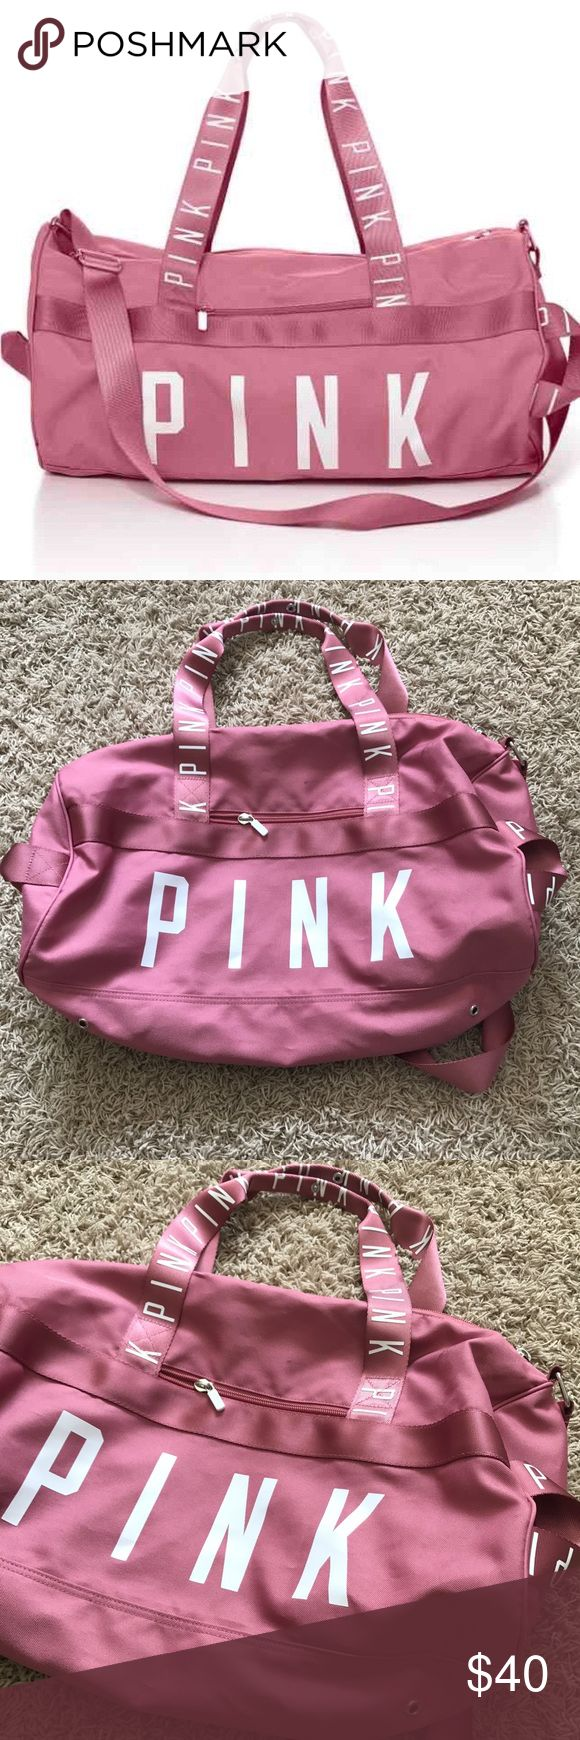 Victoria's Secret Pink Begonia Duffle Bag Victoria's Secret Pink Begonia Duffle Bag •In excellent condition, used once, from a smoke free home. Only flaw is a few small smudges as shown in the pictures •No longer sold in stores  Check out my other listings- Nike, adidas, Michael Kors, Kate Spade, Miss Me, Coach, Wildfox, Victoria's Secret, PINK, Under Armour, True Religion, Ugg Australia, Free People and more! PINK Victoria's Secret Bags Travel Bags